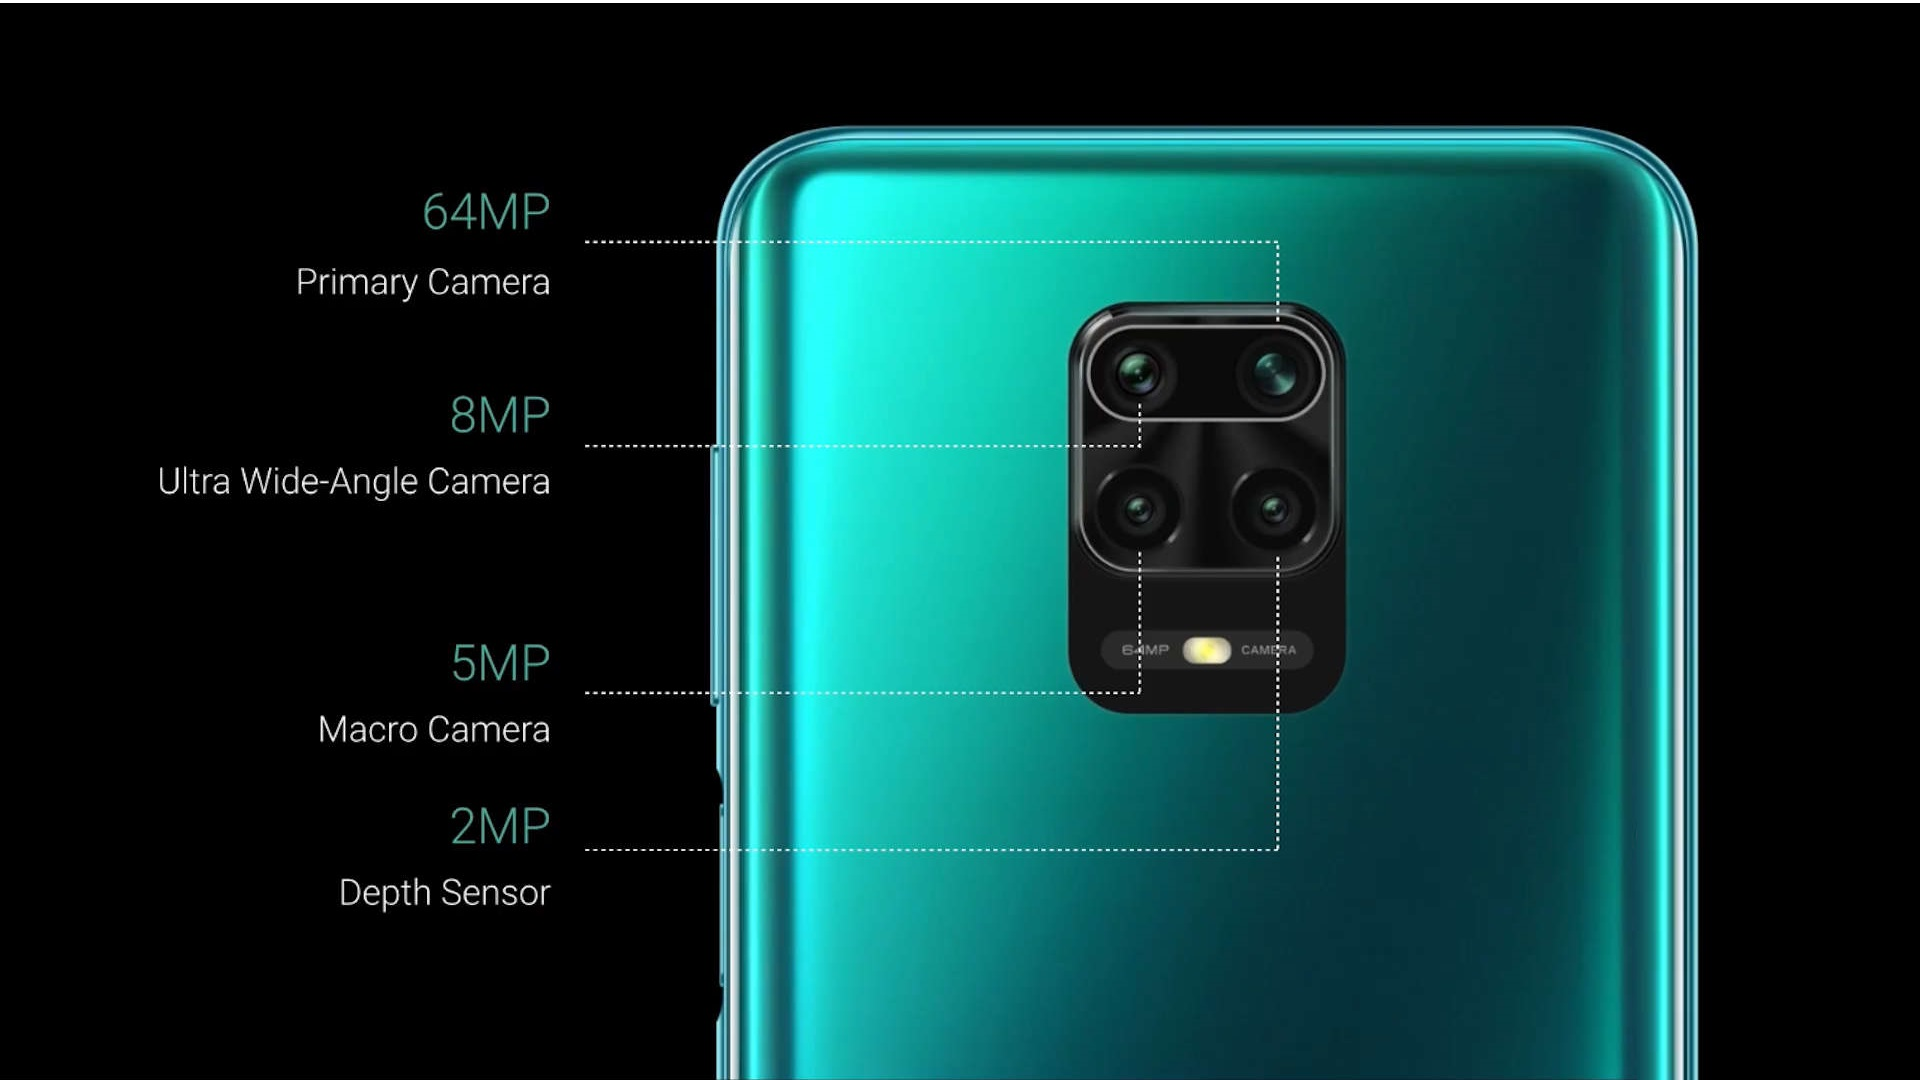 Redmi Note 9 Pro: problems with the camera, the fix is coming - GizChina.it